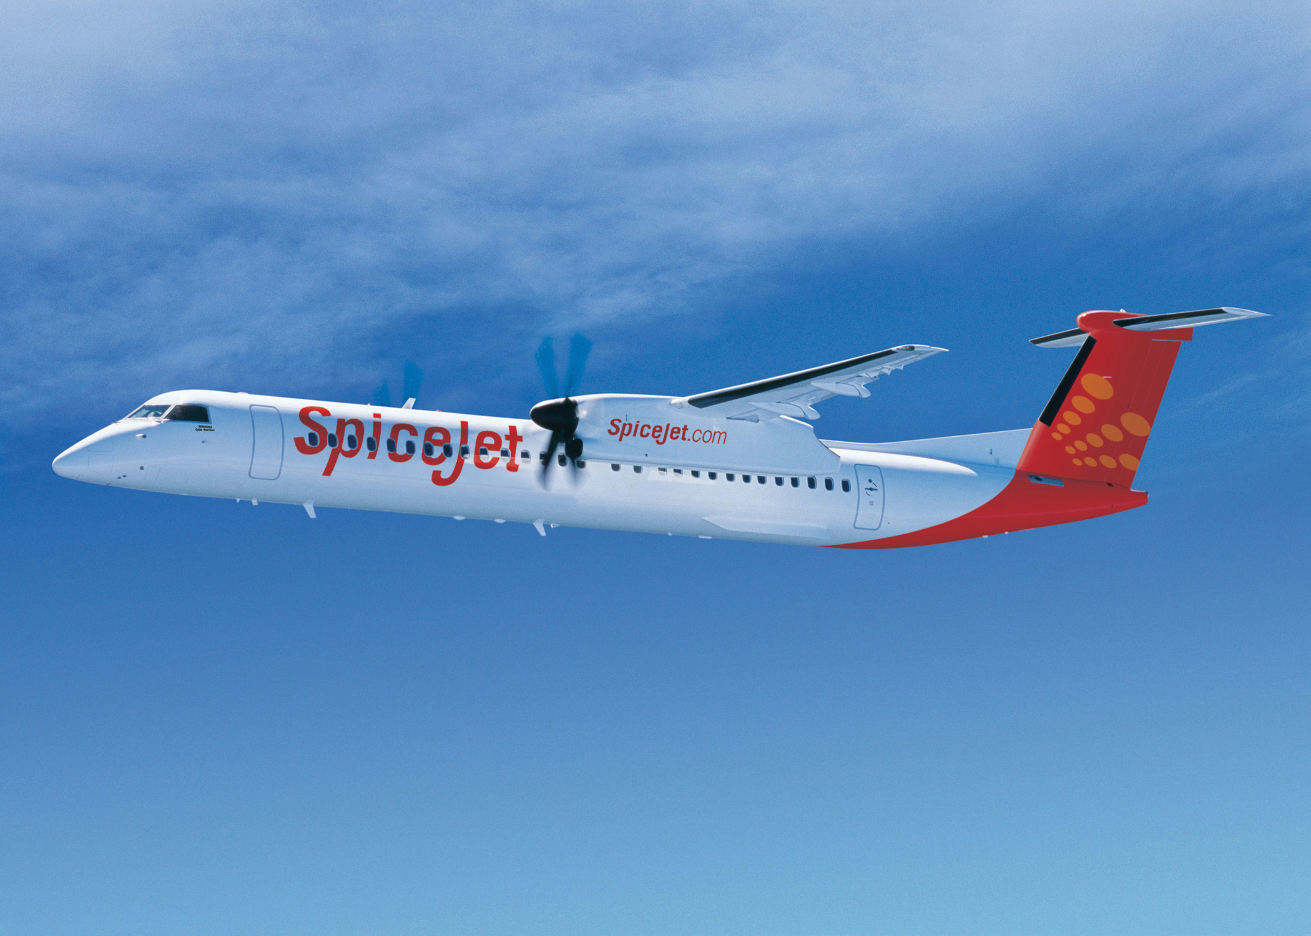 SpiceJet completes India's first biofuel flight